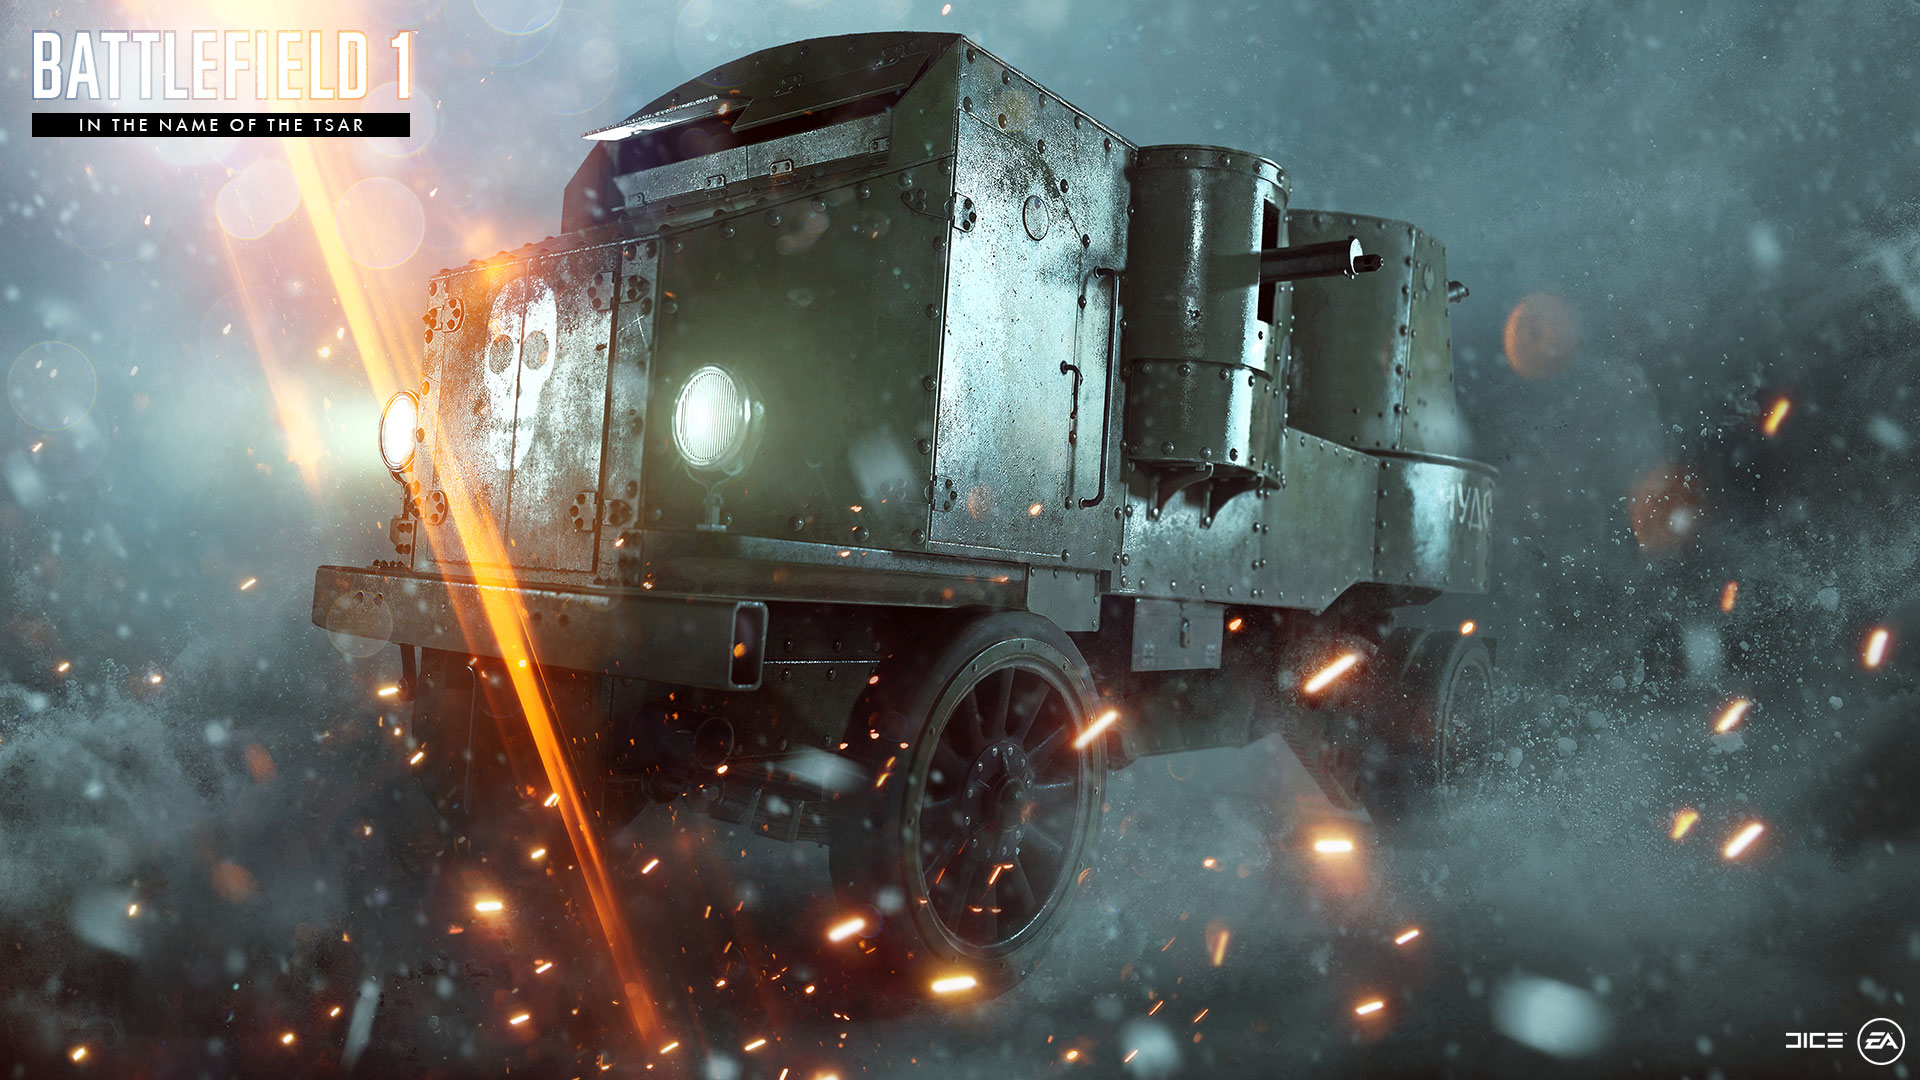 Battlefield 1 Has A Revolution With In The Name Of The Tsar